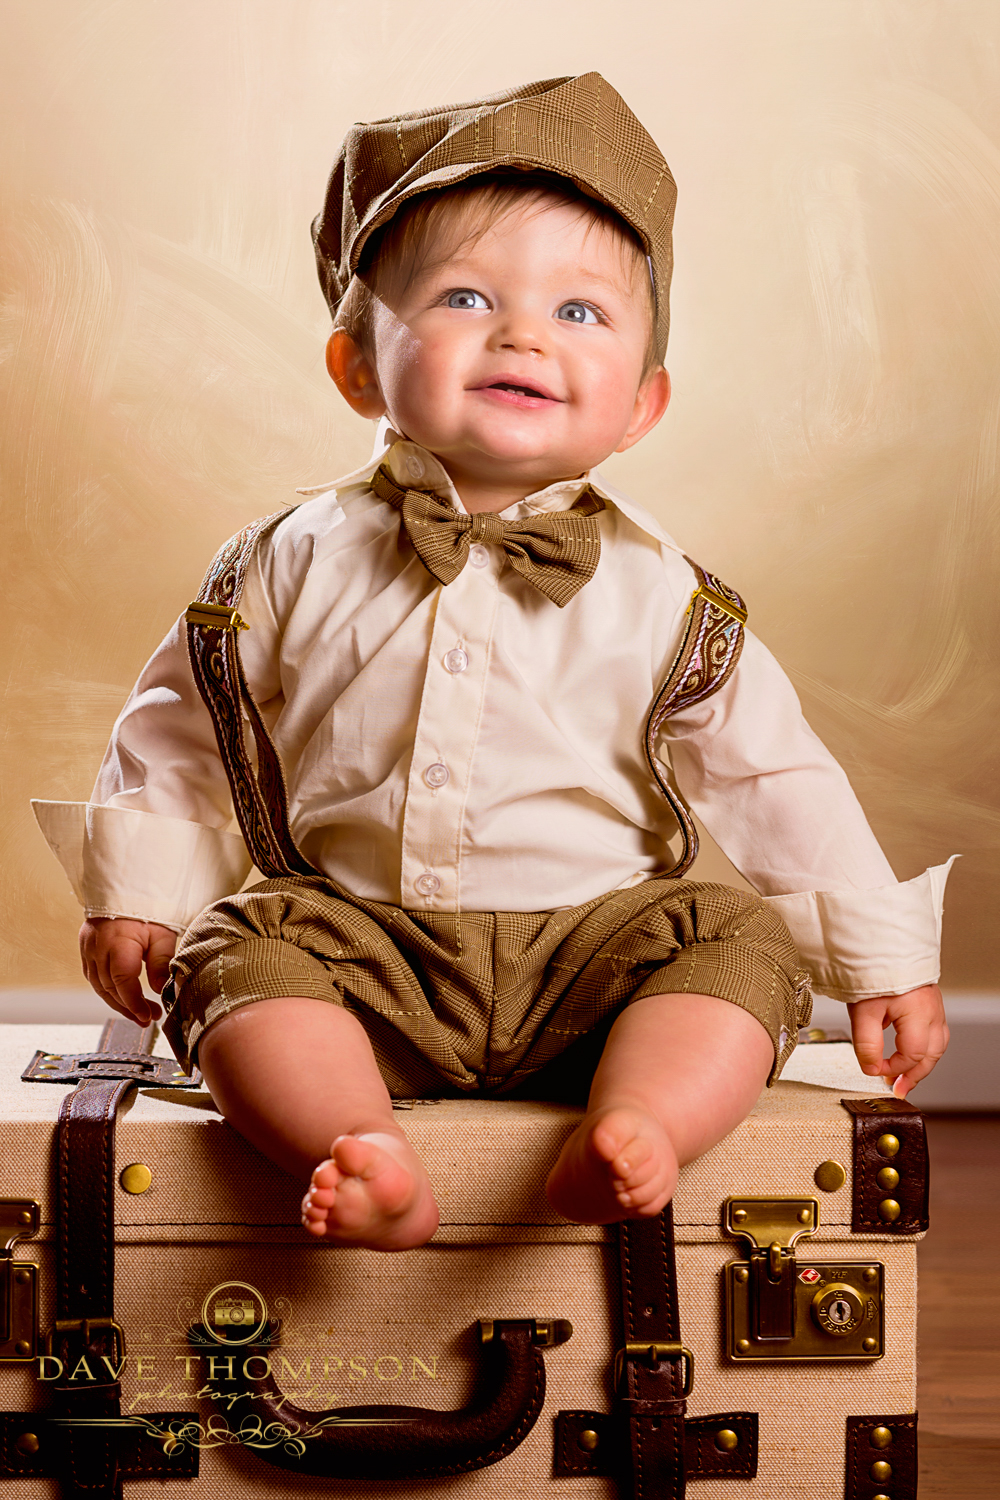 The old-time suit just adds to this stylized toddler portrait.  The suitcase prop adds interest and a bit of fun to this family photo.